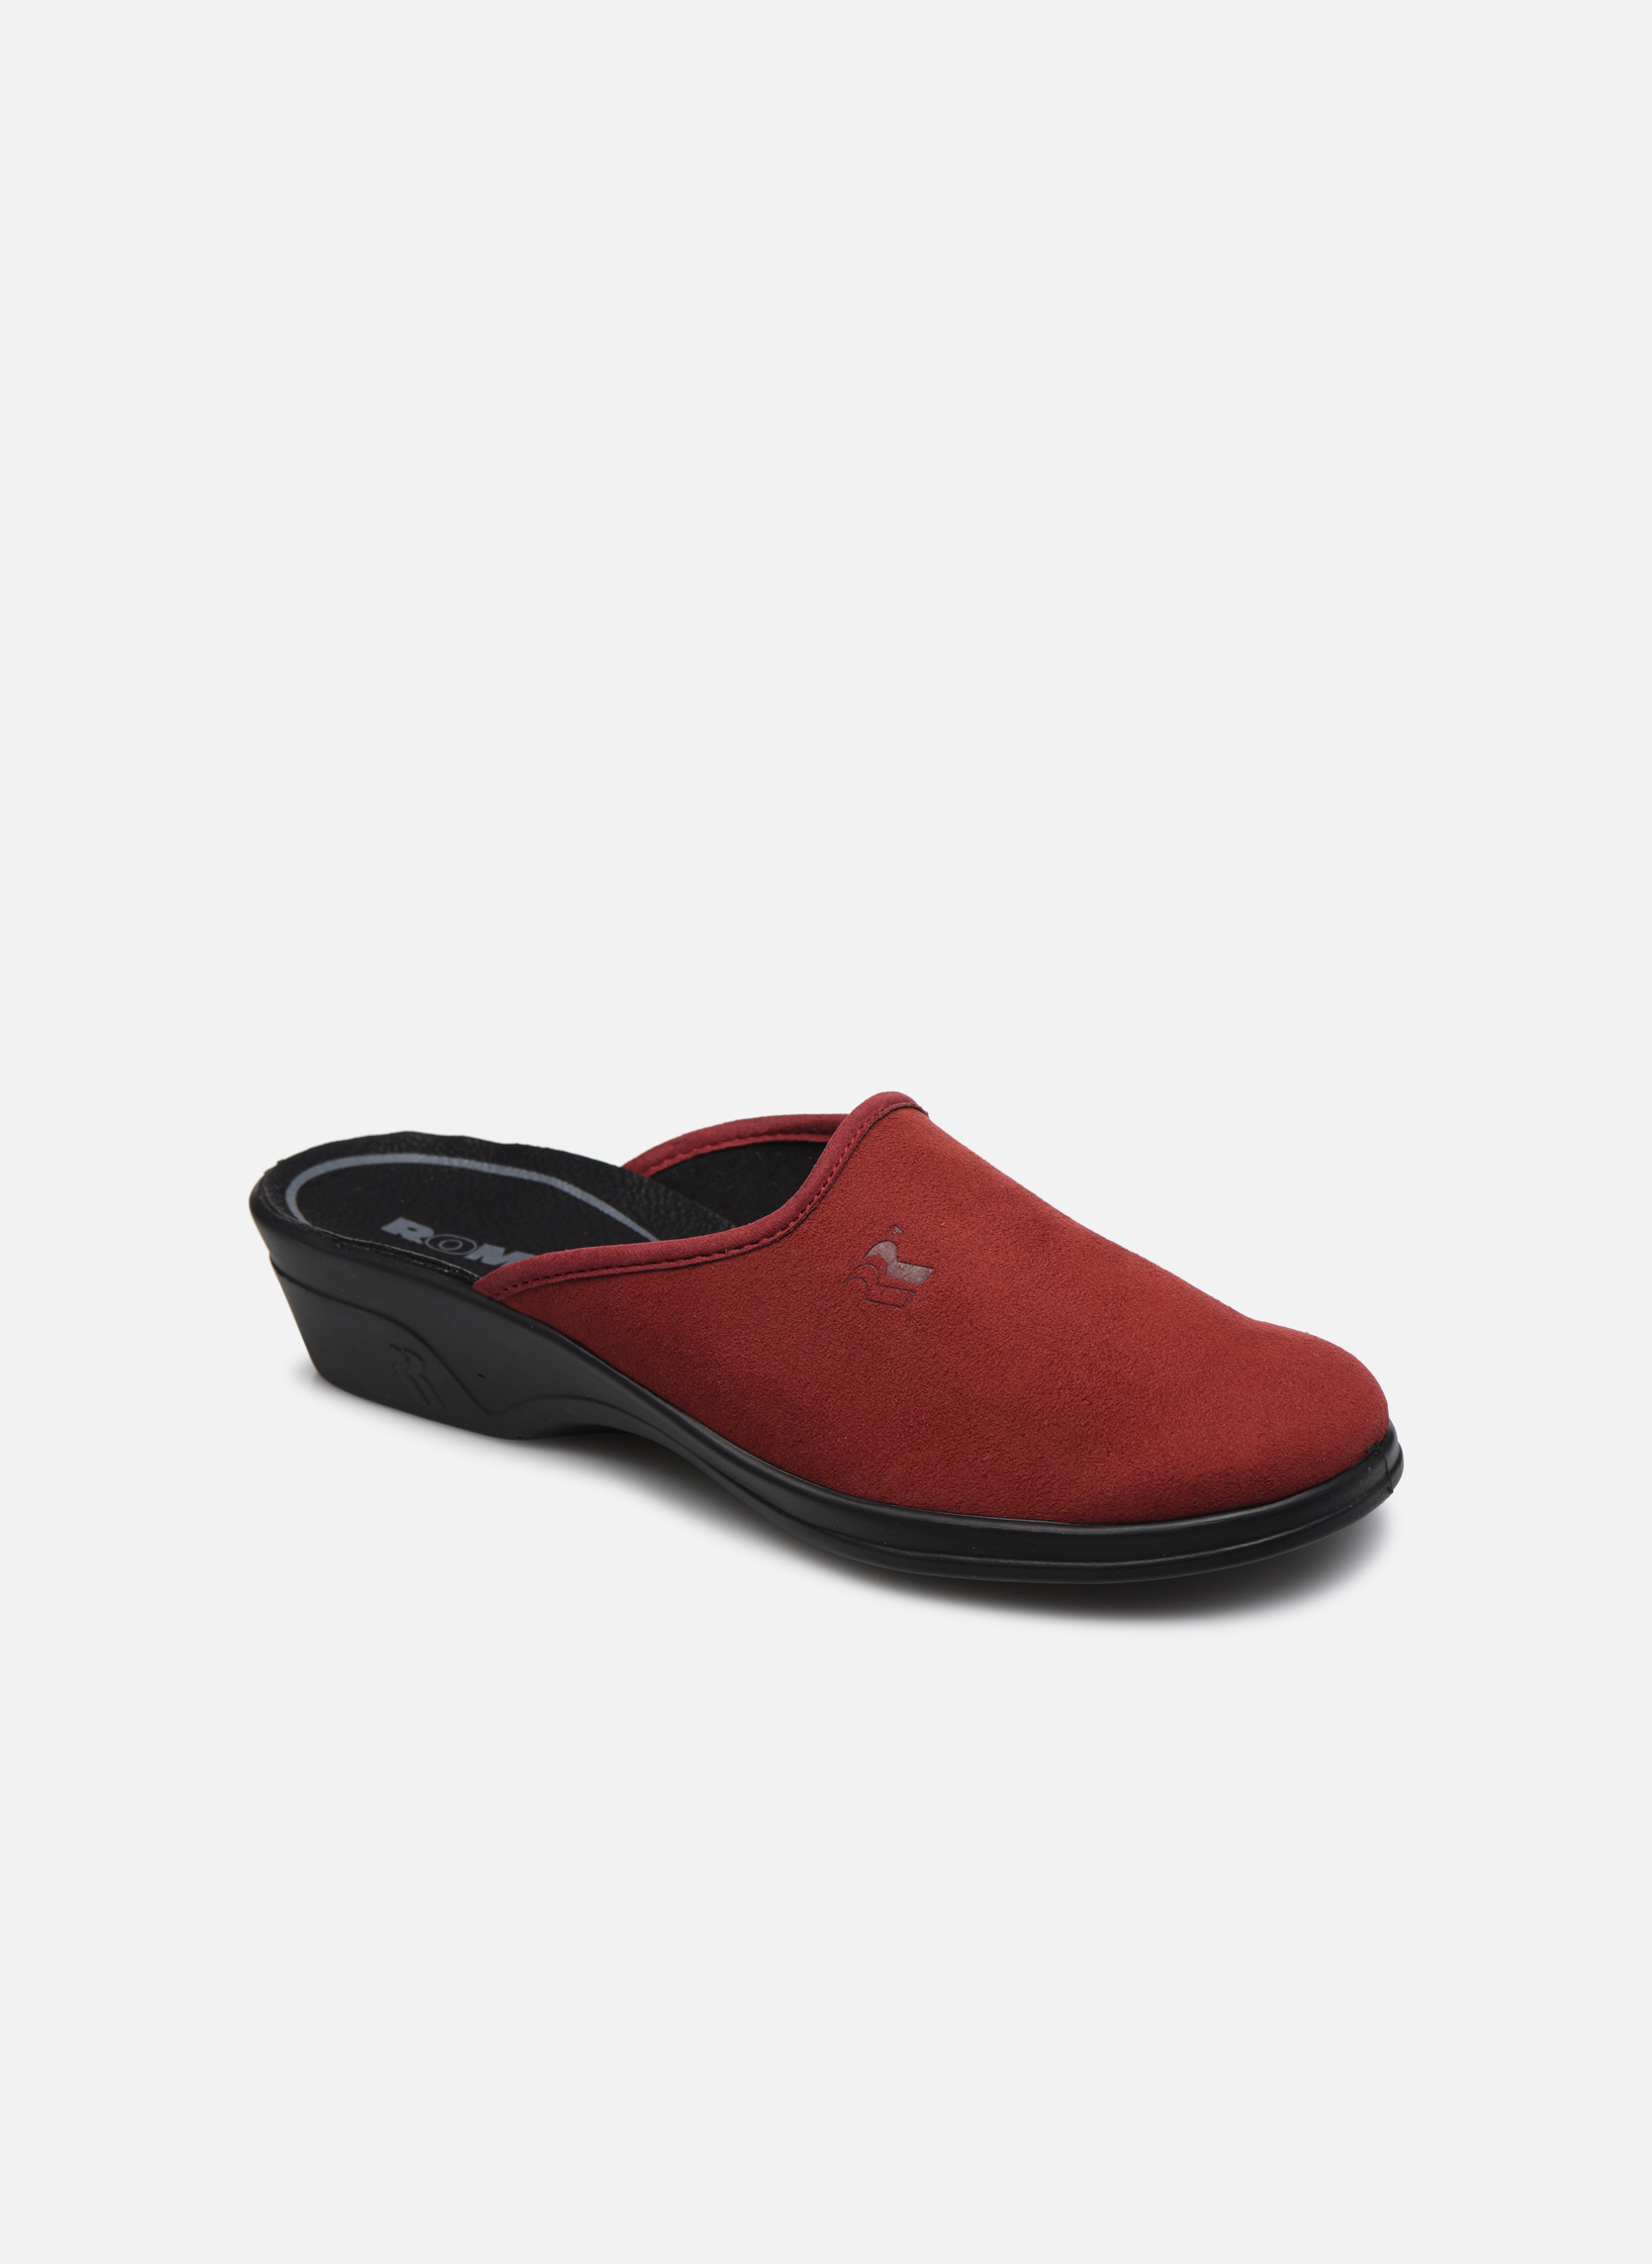 Chaussons Femme Remo 122